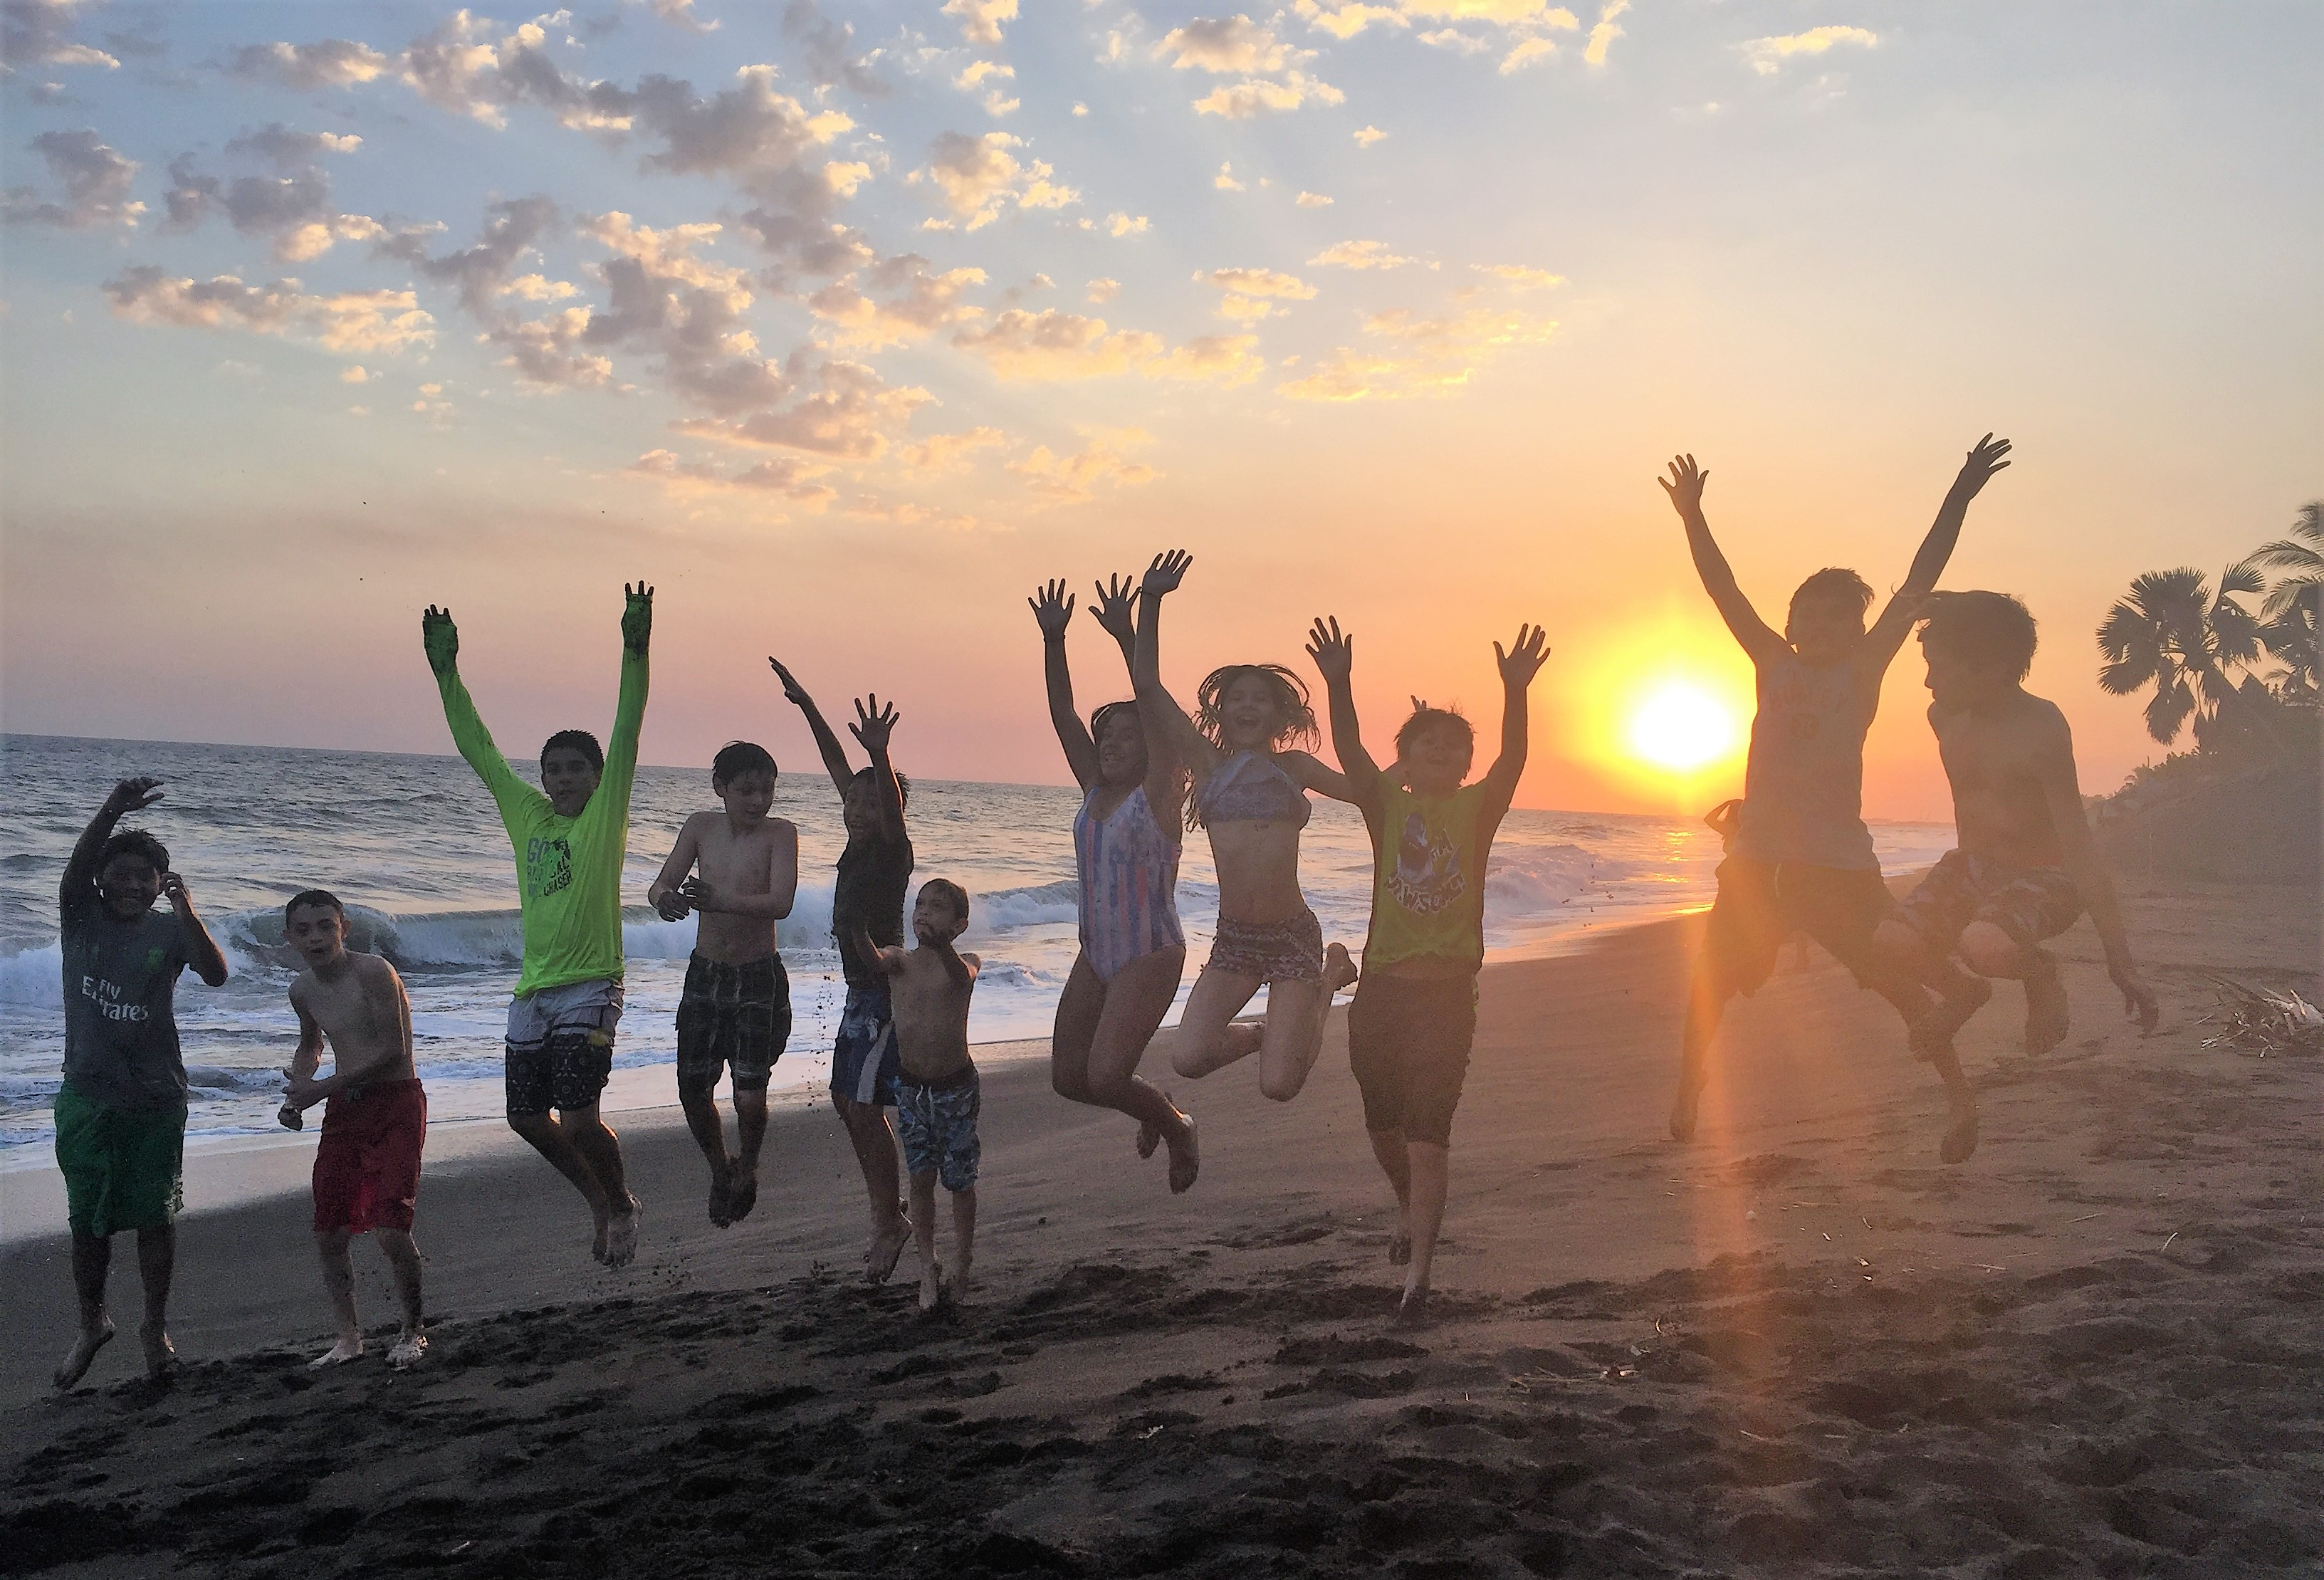 Beach Birthday Party - What Other Way to Celebrate Turning 13